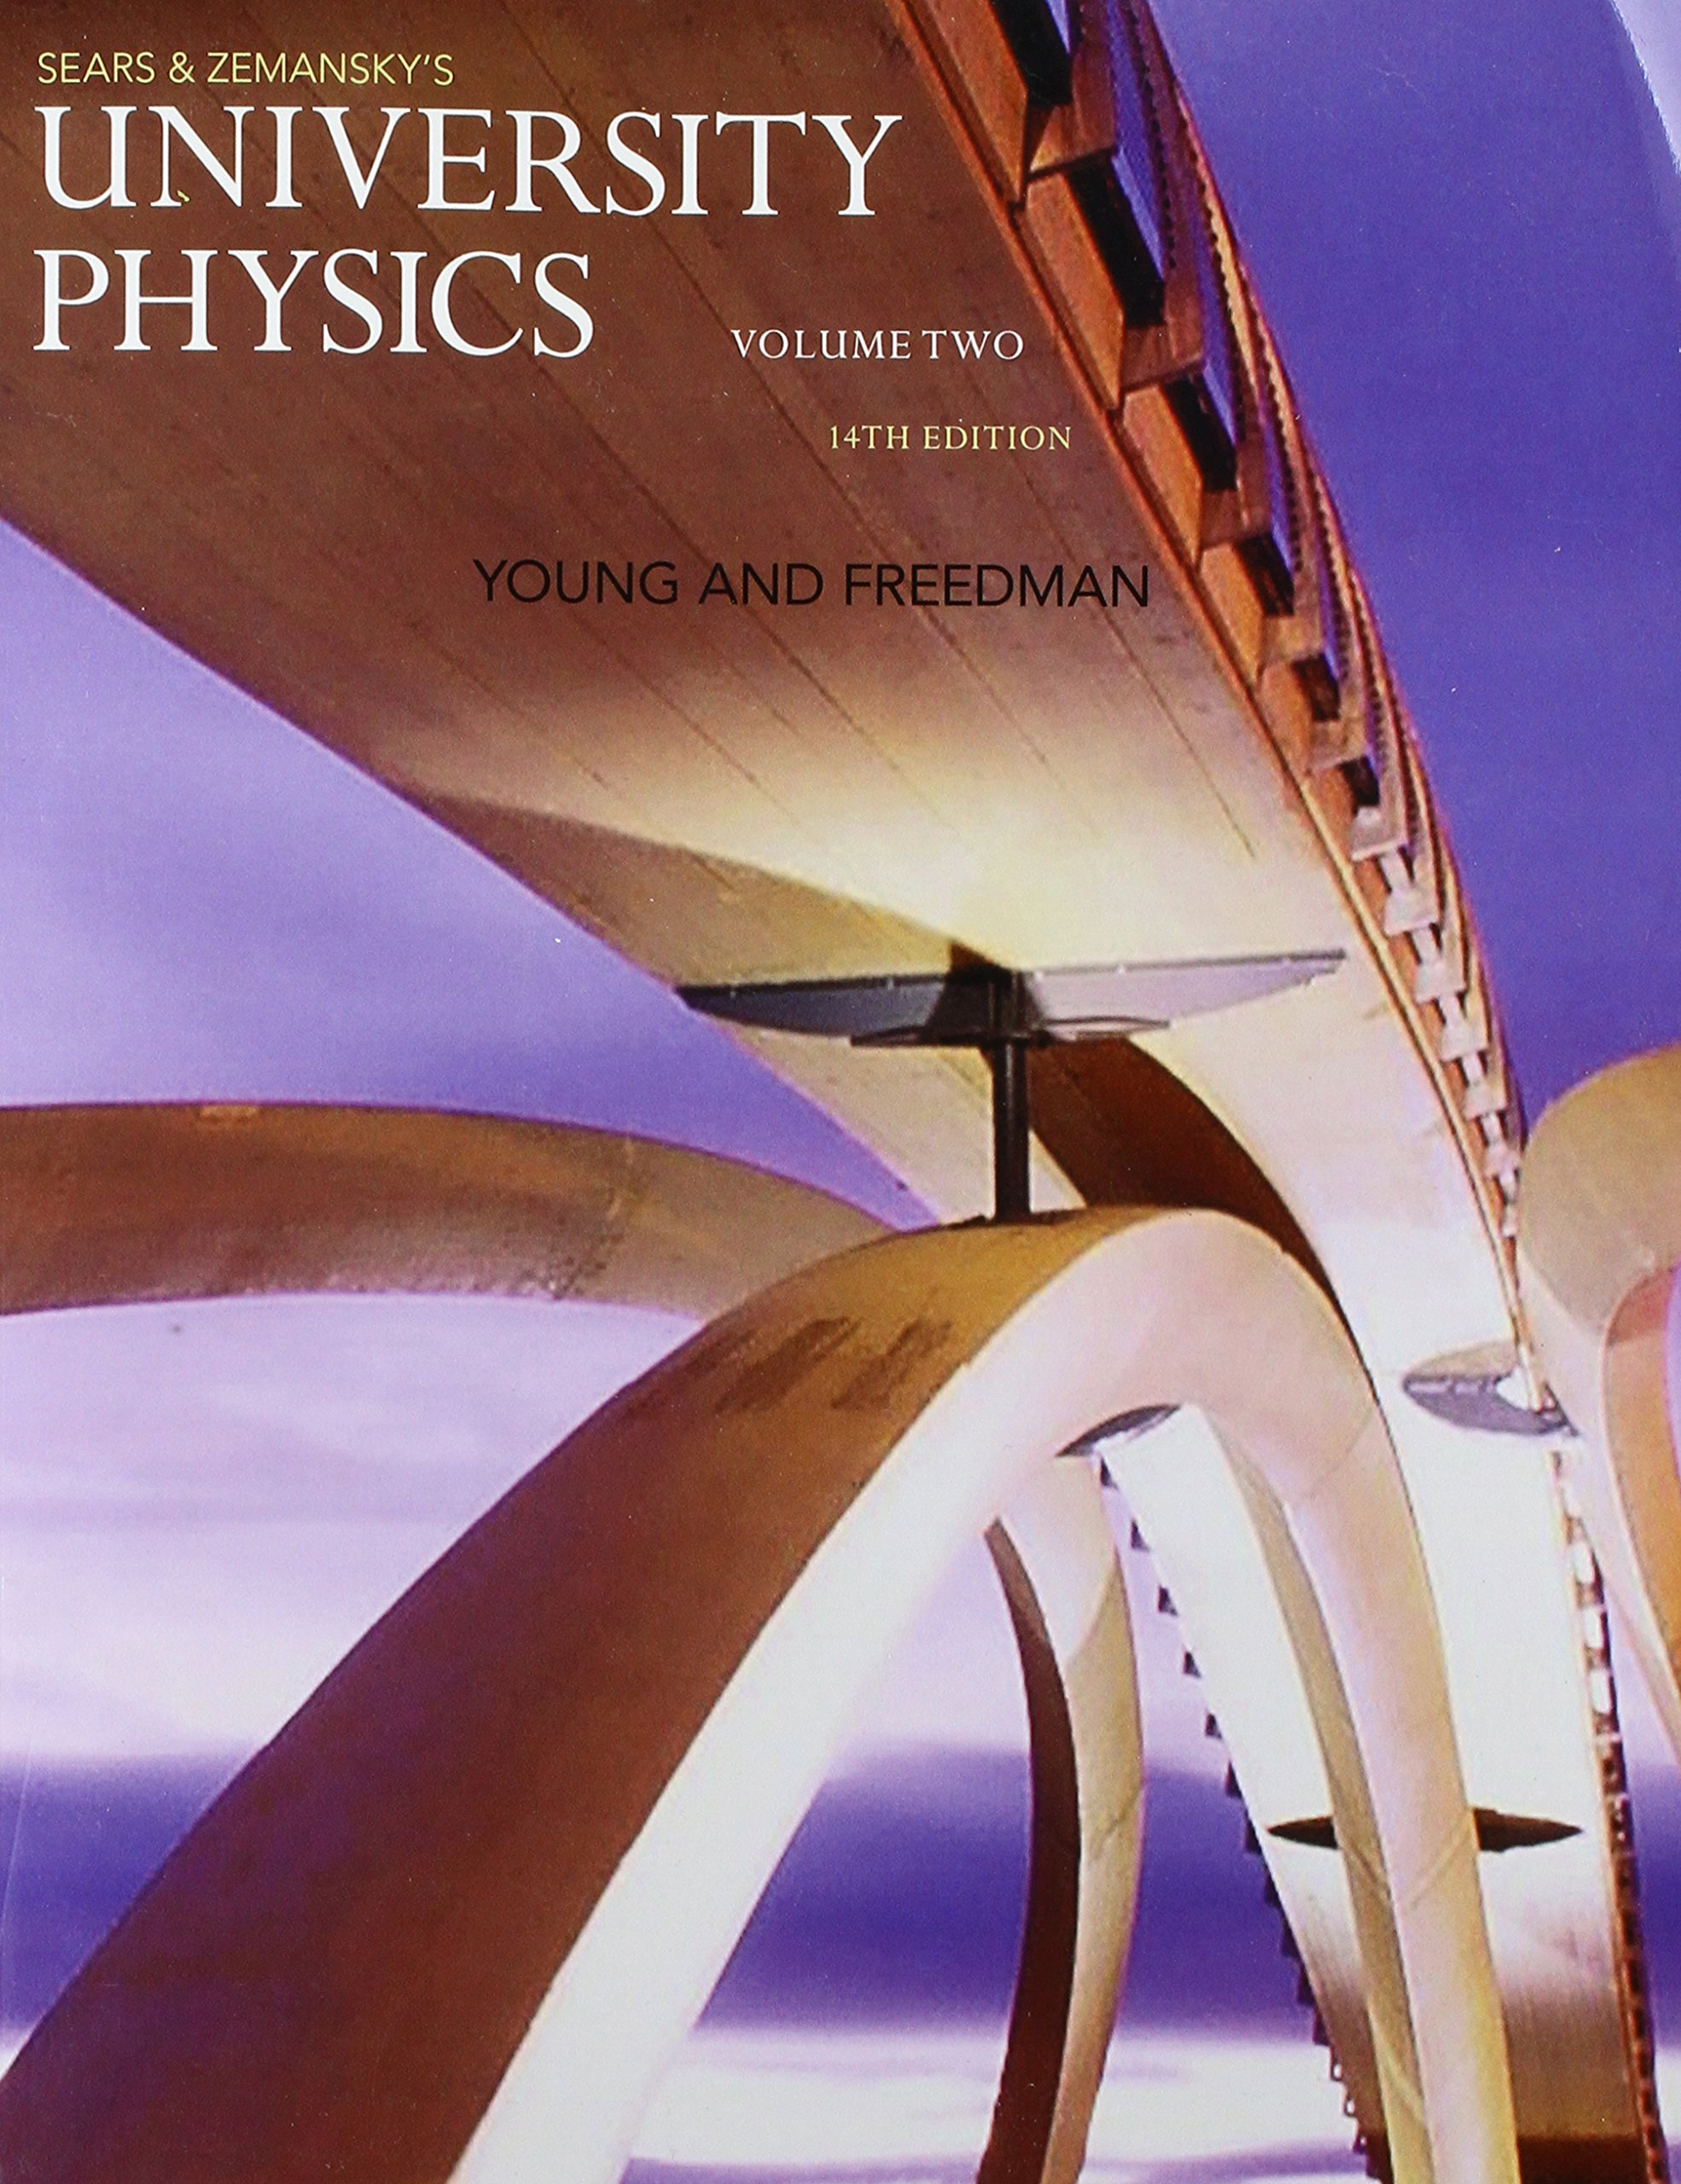 Buy University Physics, Volume 2 (Chs. 21-37) Book Online at Low Prices in  India   University Physics, Volume 2 (Chs. 21-37) Reviews & Ratings -  Amazon.in